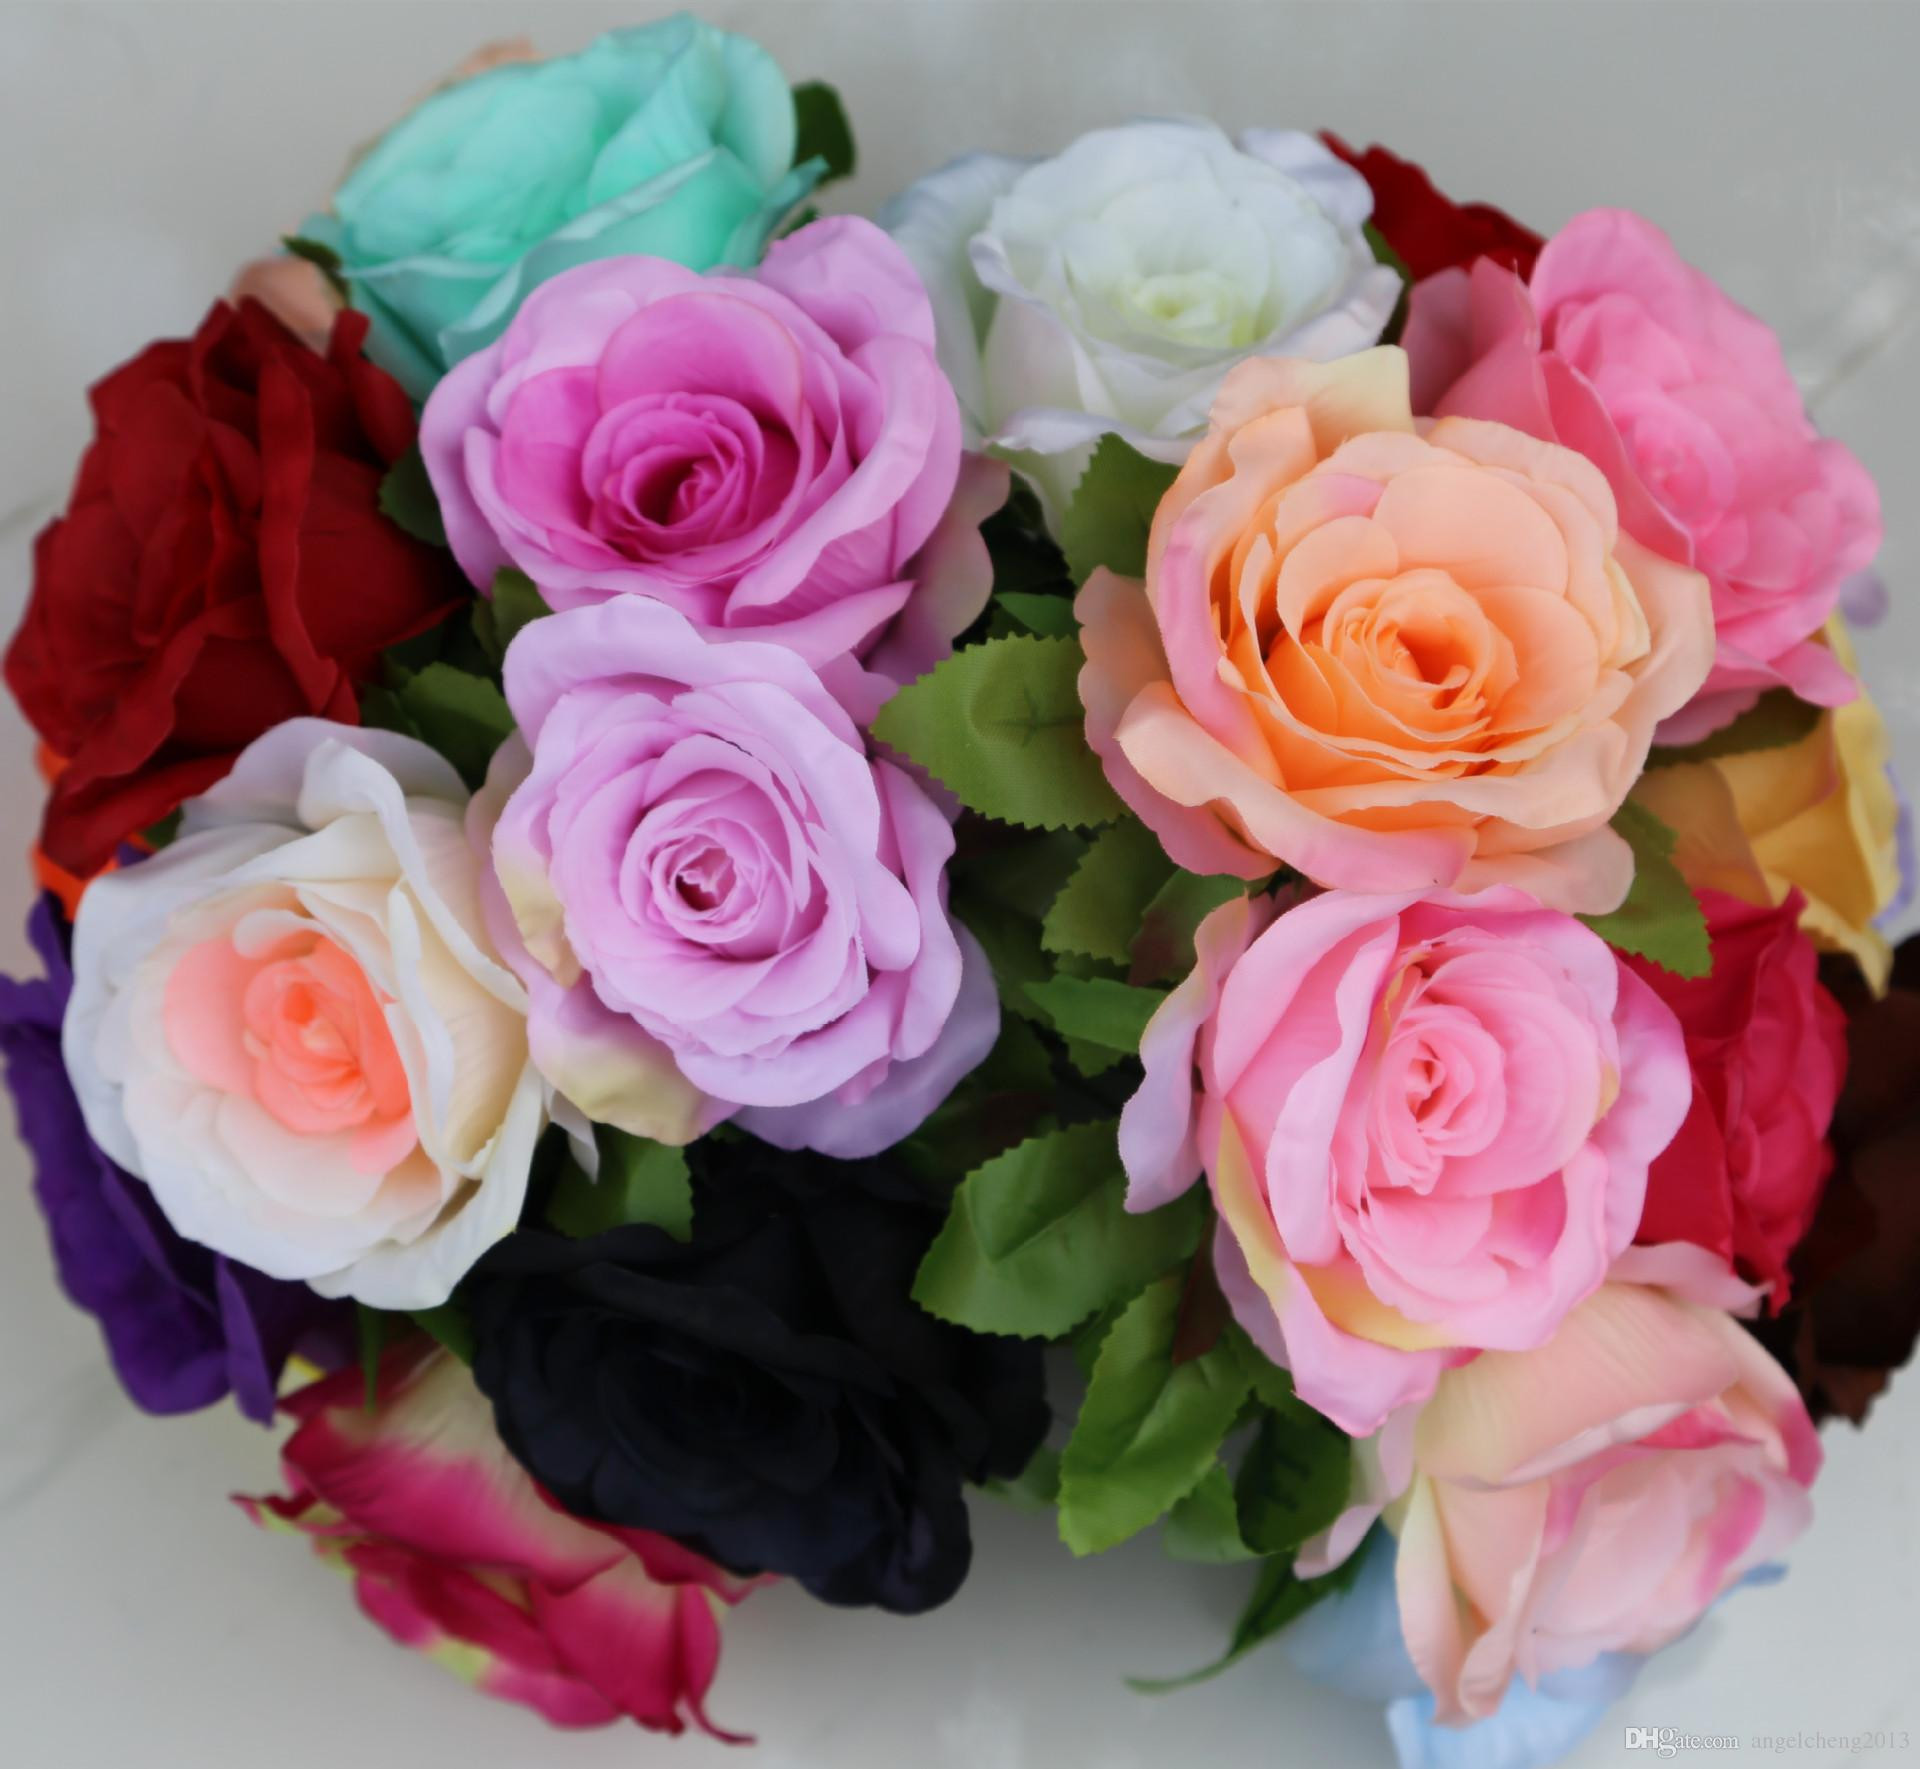 line Cheap Artificial Flowers Silk Roses Bouquet Home Wedding Decoration Pack 24 Colour Select Hb 032 By Angelcheng2013